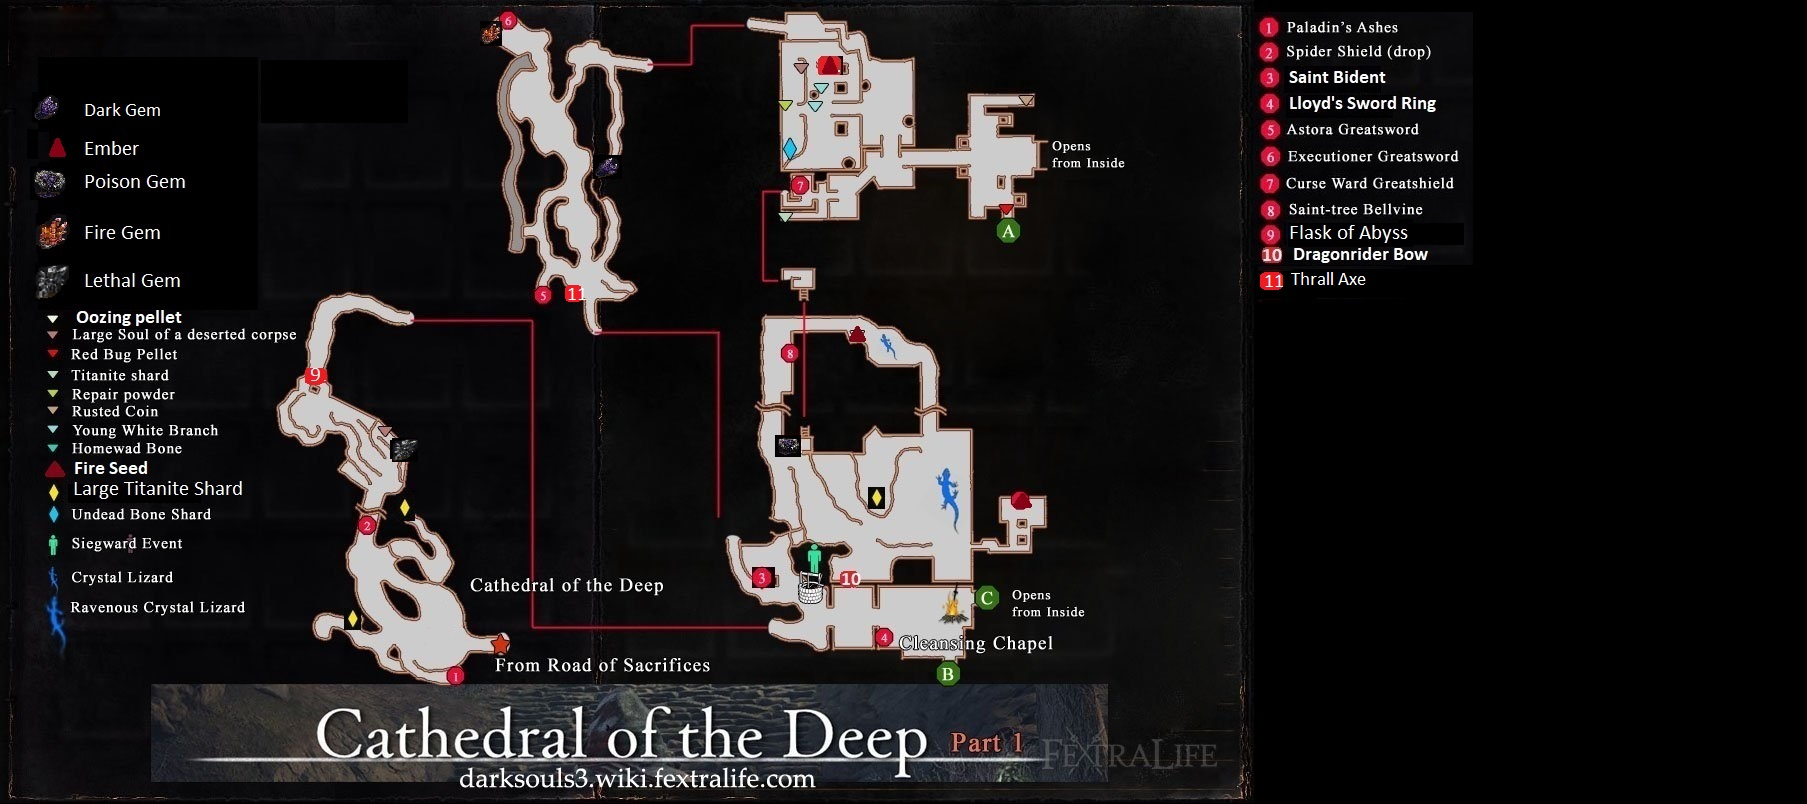 cathedral_of_the_deep_map1.jpg